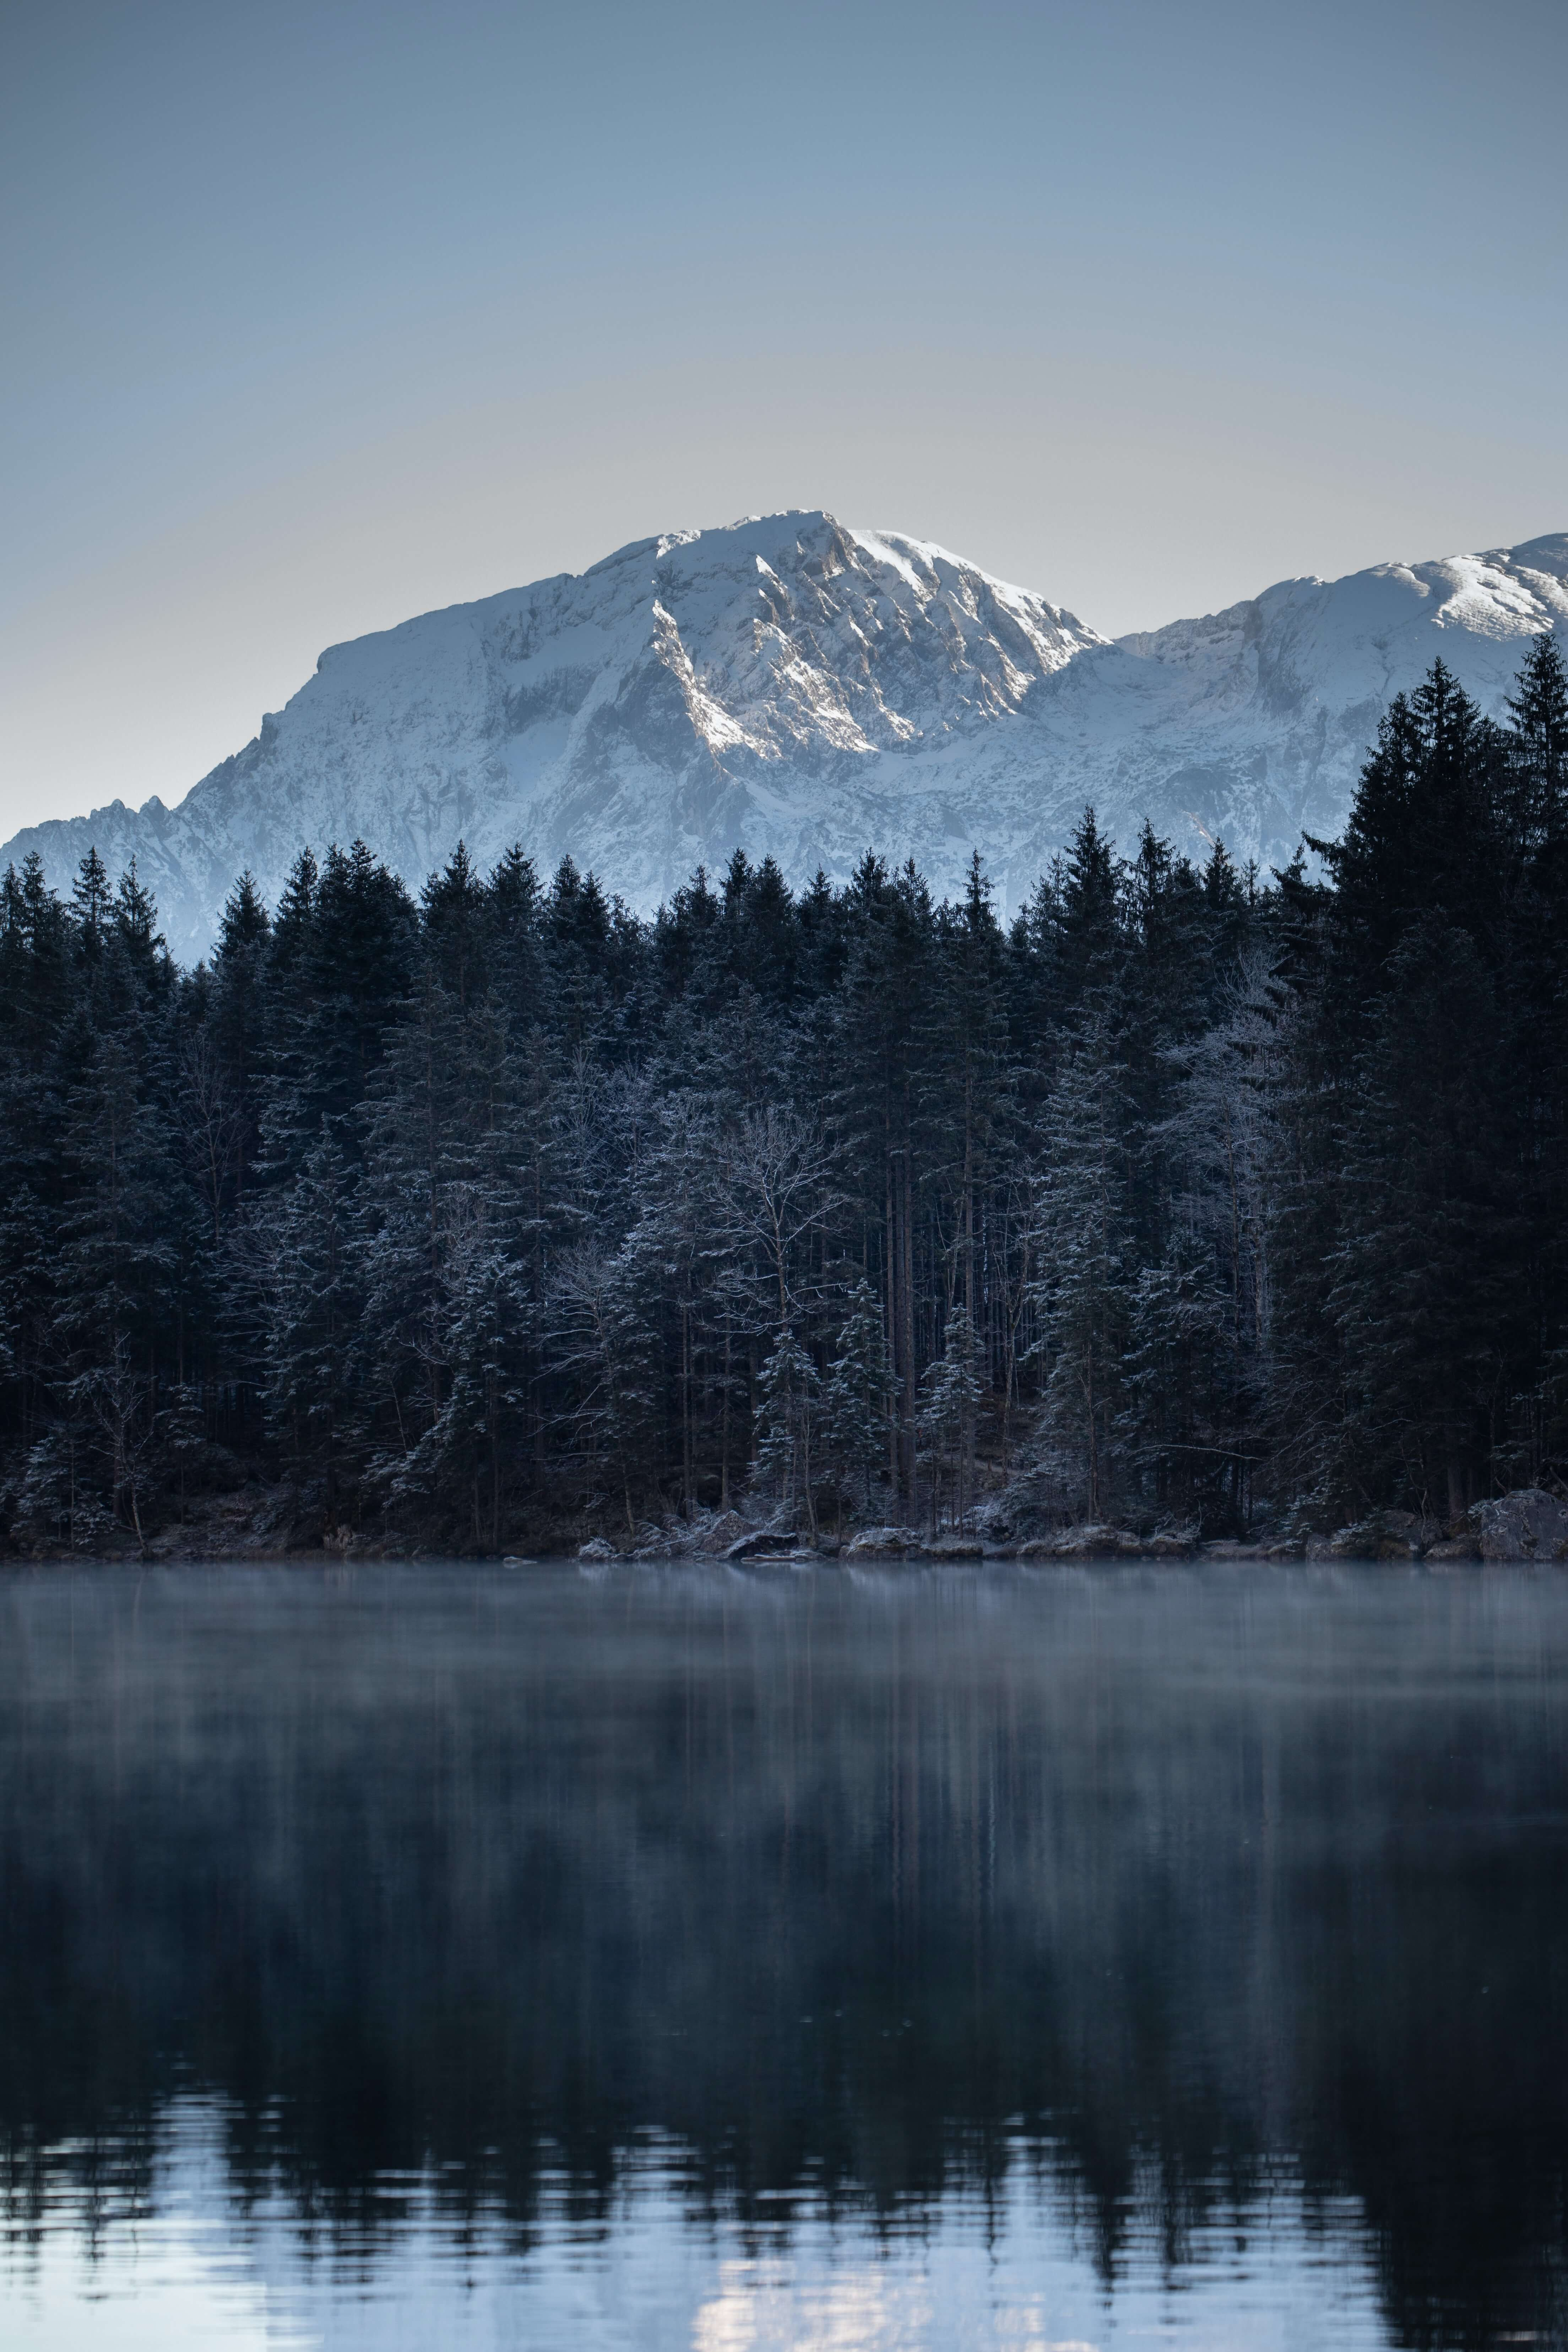 snowy mountain behind a lake